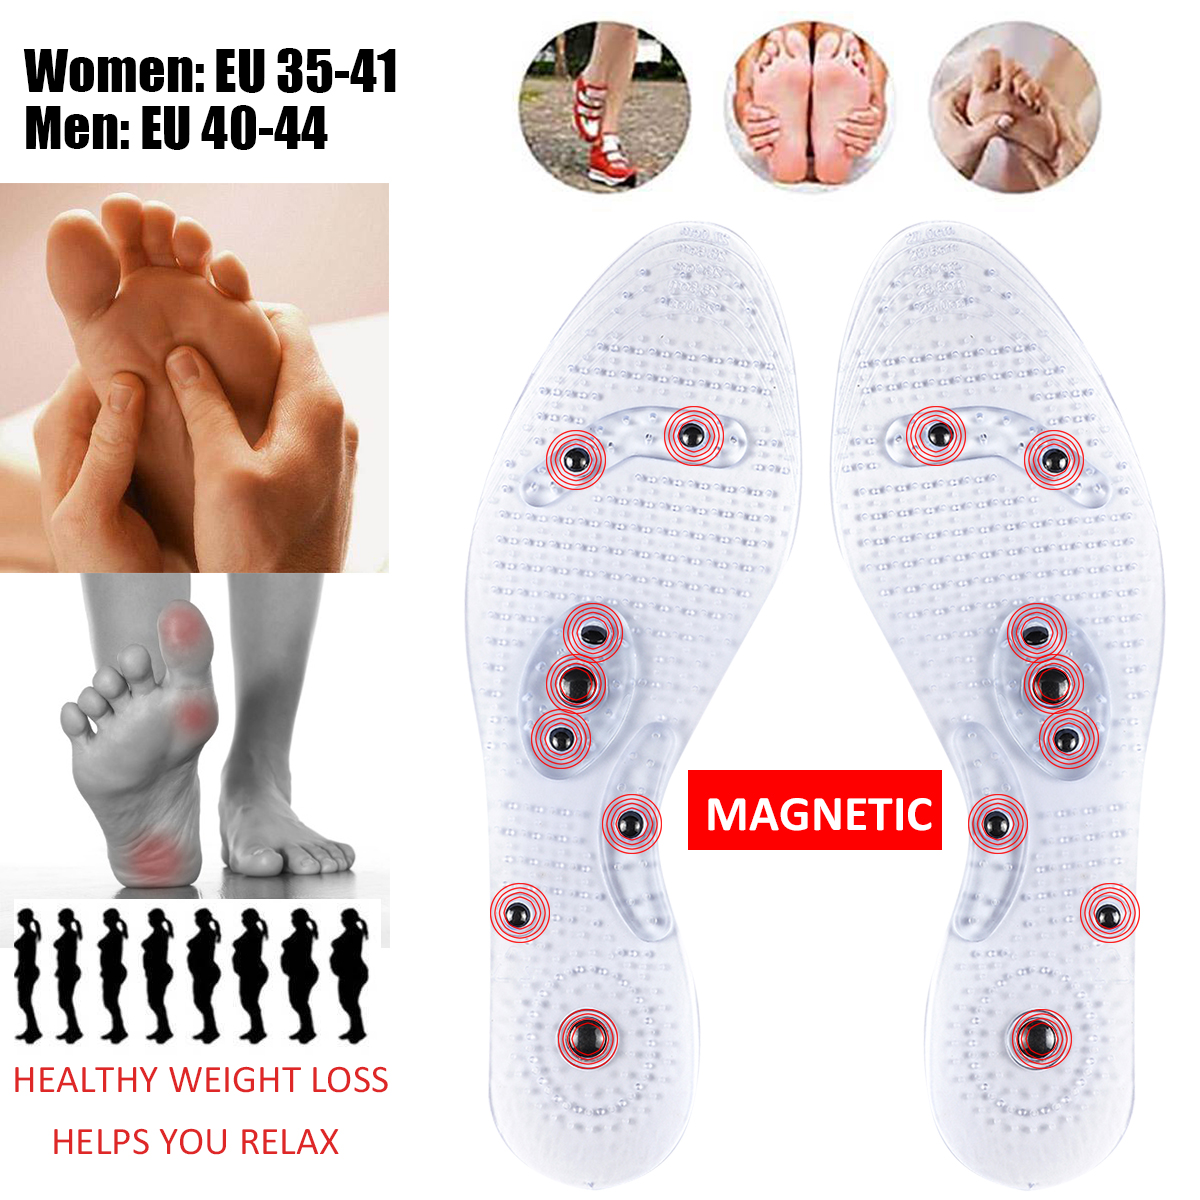 Acupressure Magnetic Massage Foot Therapy Reflexology Pain Relief Shoe Insoles Insole Pads for Women Men